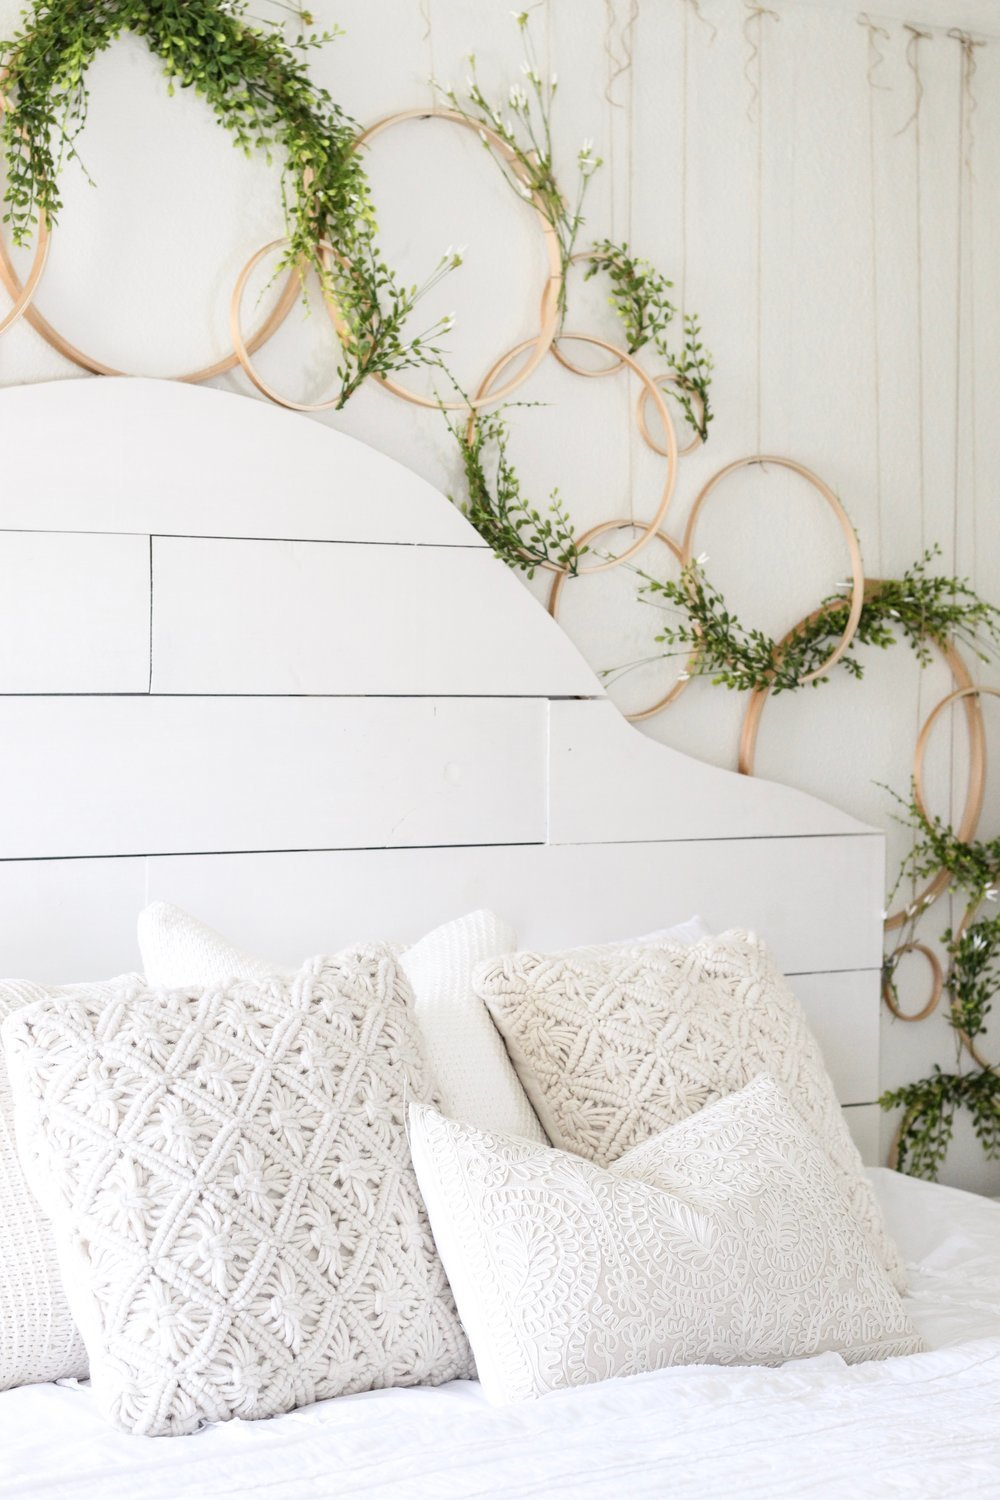 Cotton+Stem+Blog+wreath+wall+spring+decor+shiplap+headboard+farmhouse+bedroom